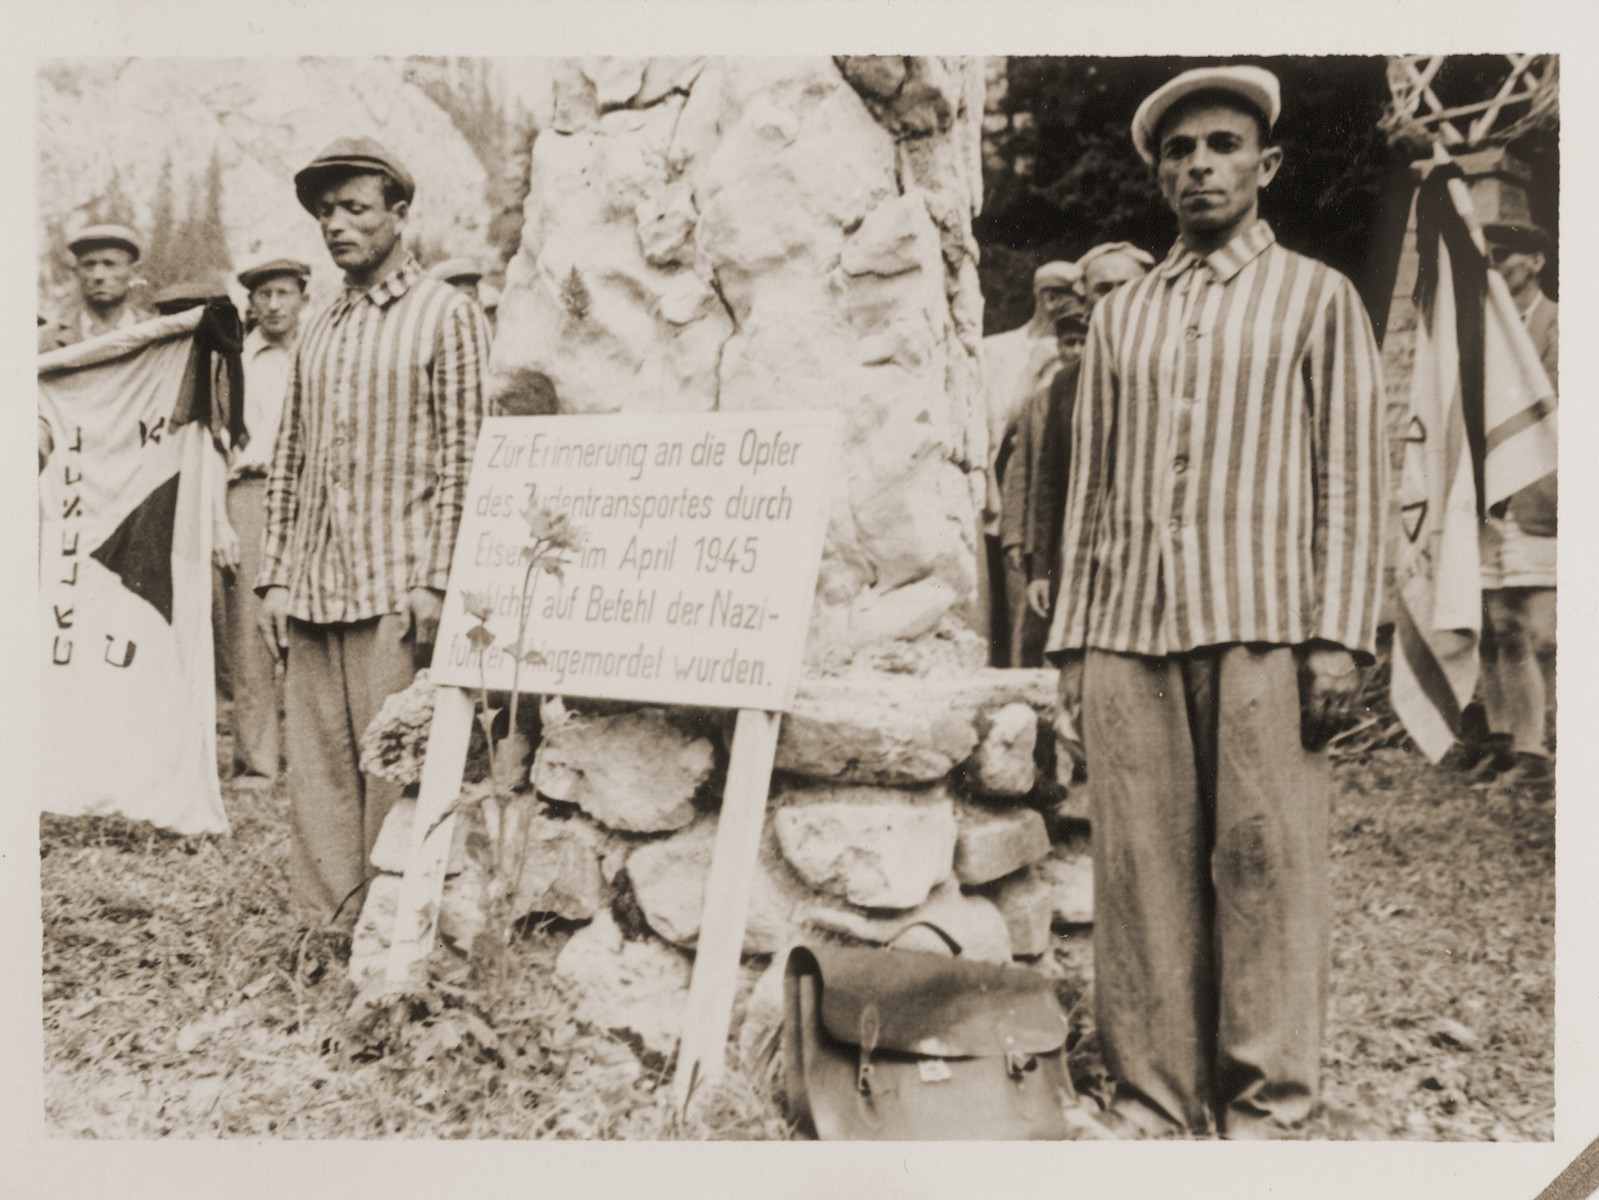 "Two men wearing striped prisoner uniforms stand next to a monument memorializing Jewish transports that passed through Eisenerz.   Family album bearing the title ""Motoring/Jewish DP camp/St. Marein [Sankt Marien]/School,"" that belonged to Moritz Friedler.  In 1946 and 1947, he served as a social worker with the Jewish Committee for Relief Abroad at the Sankt Marien DP camp in the British zone of Austria. Friedler subsequently became the JDC's Area Director in Linz, Austria.  The photo album documents Jewish DP life in both places."